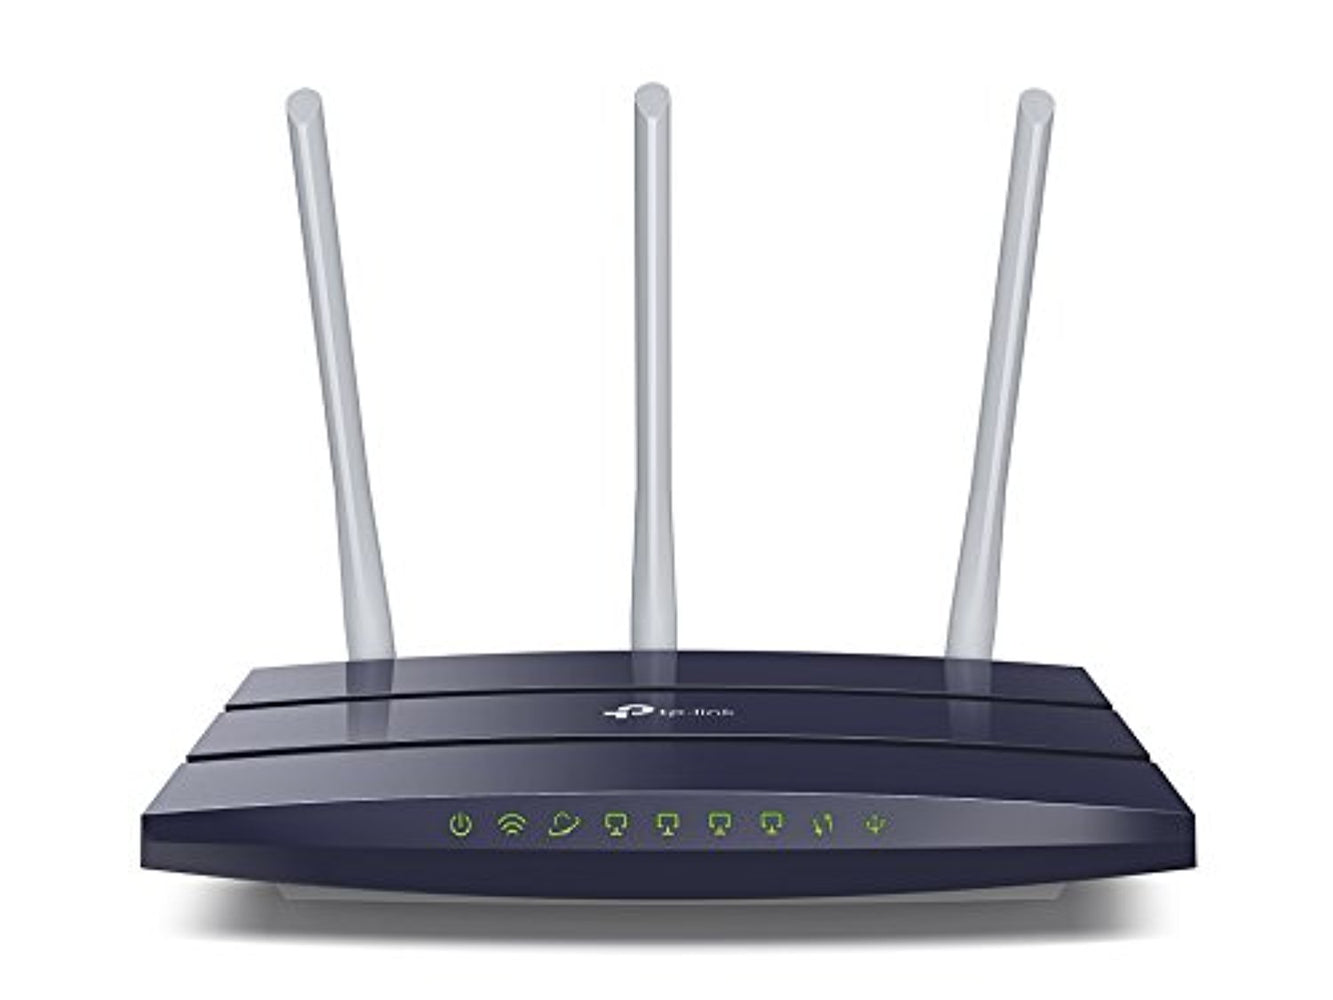 TP-Link N450 Wireless Wi-Fi Gigabit Router (TL-WR1043N)